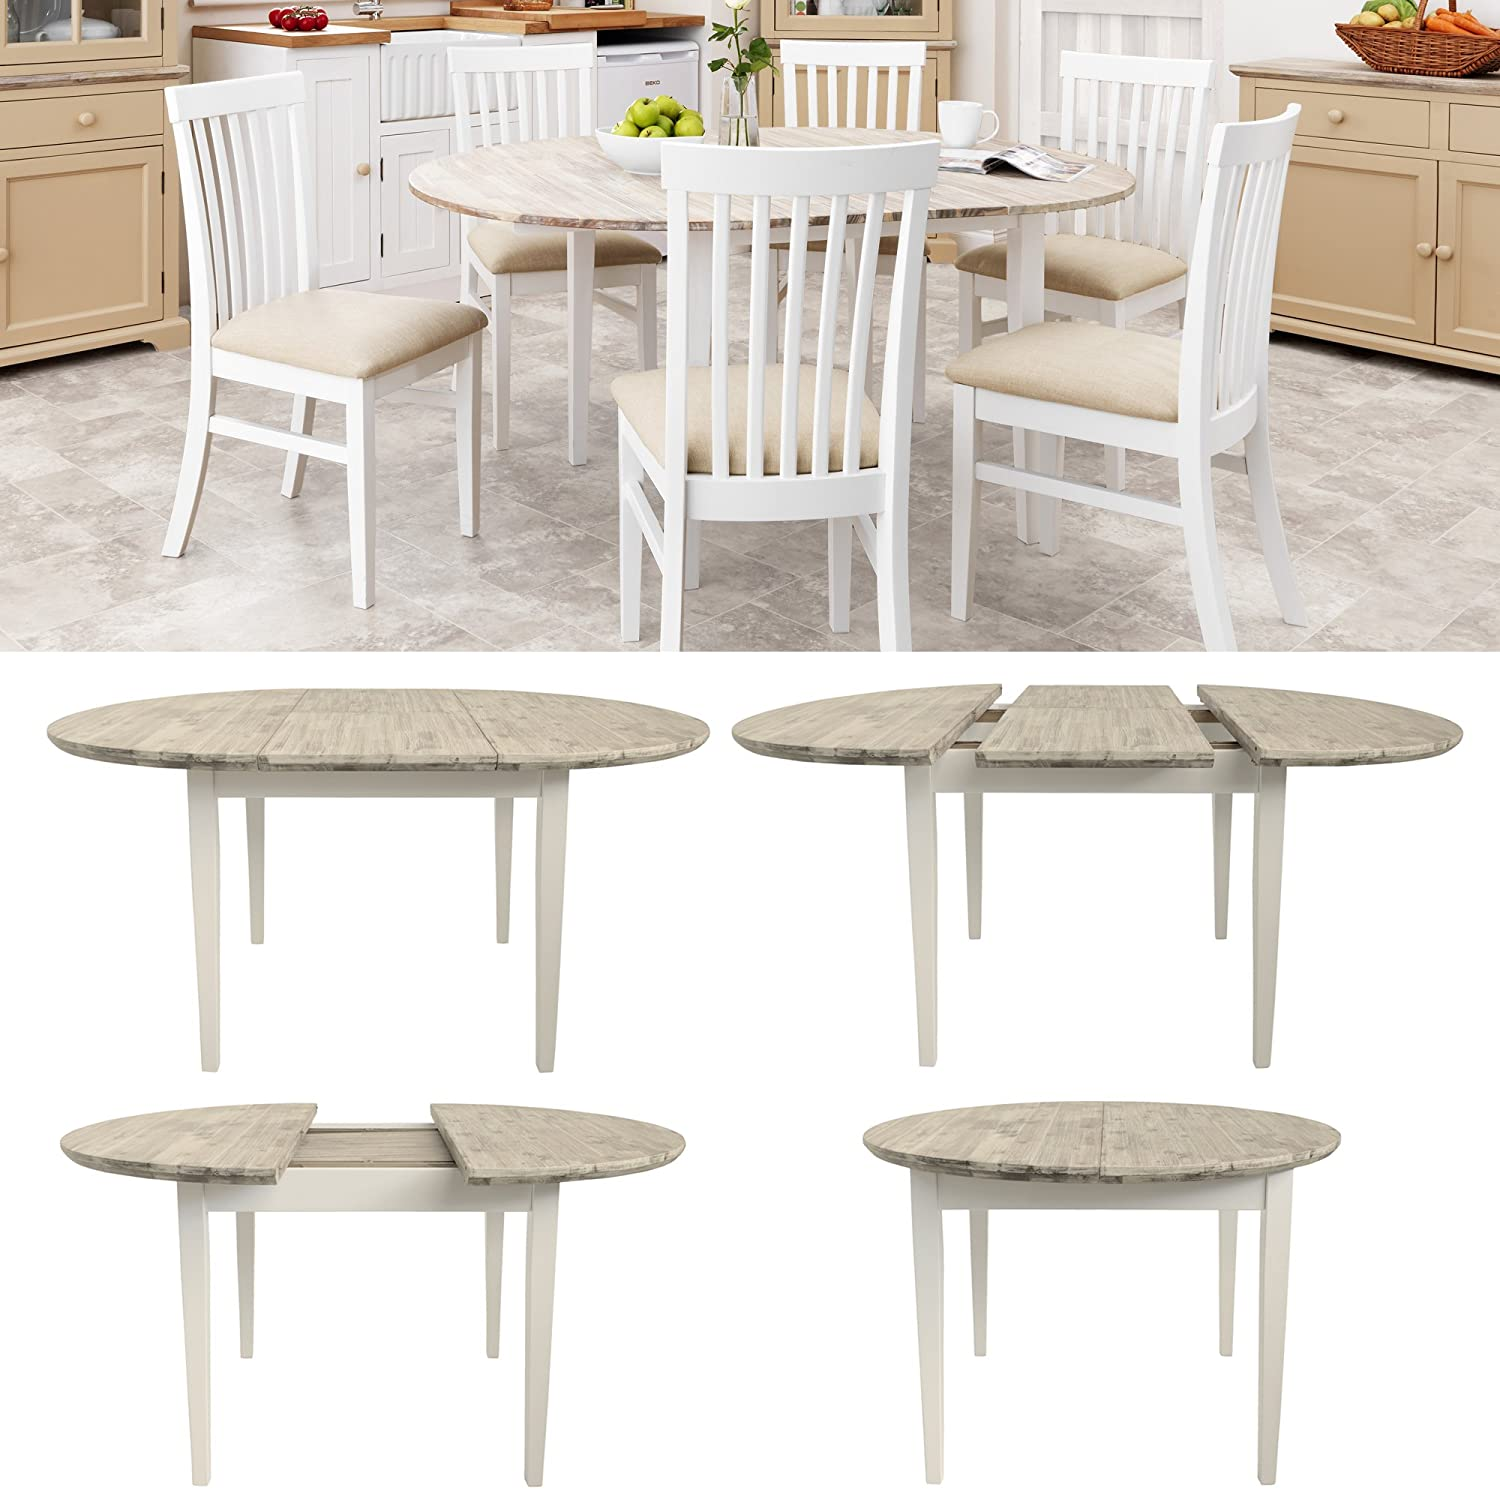 Round Country Kitchen Table Rhode Island Extending Round Dining Table Amazoncouk Kitchen